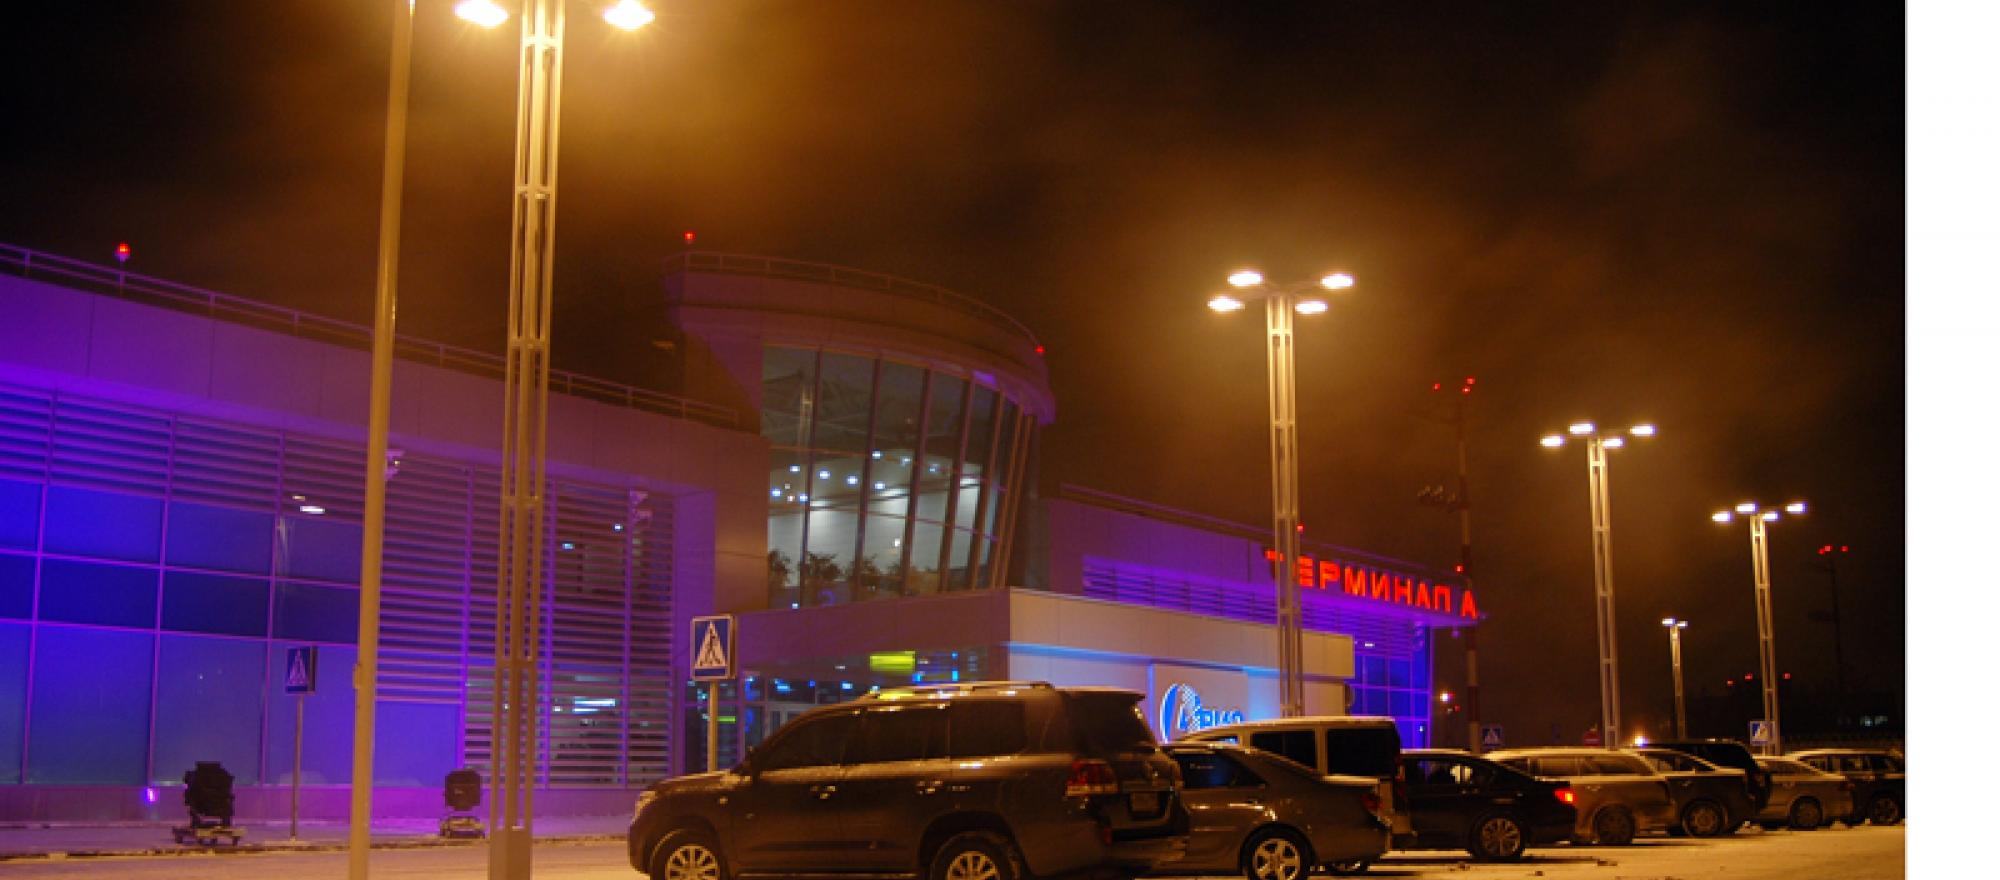 Terminal A at Moscow Sheremetievo Airport